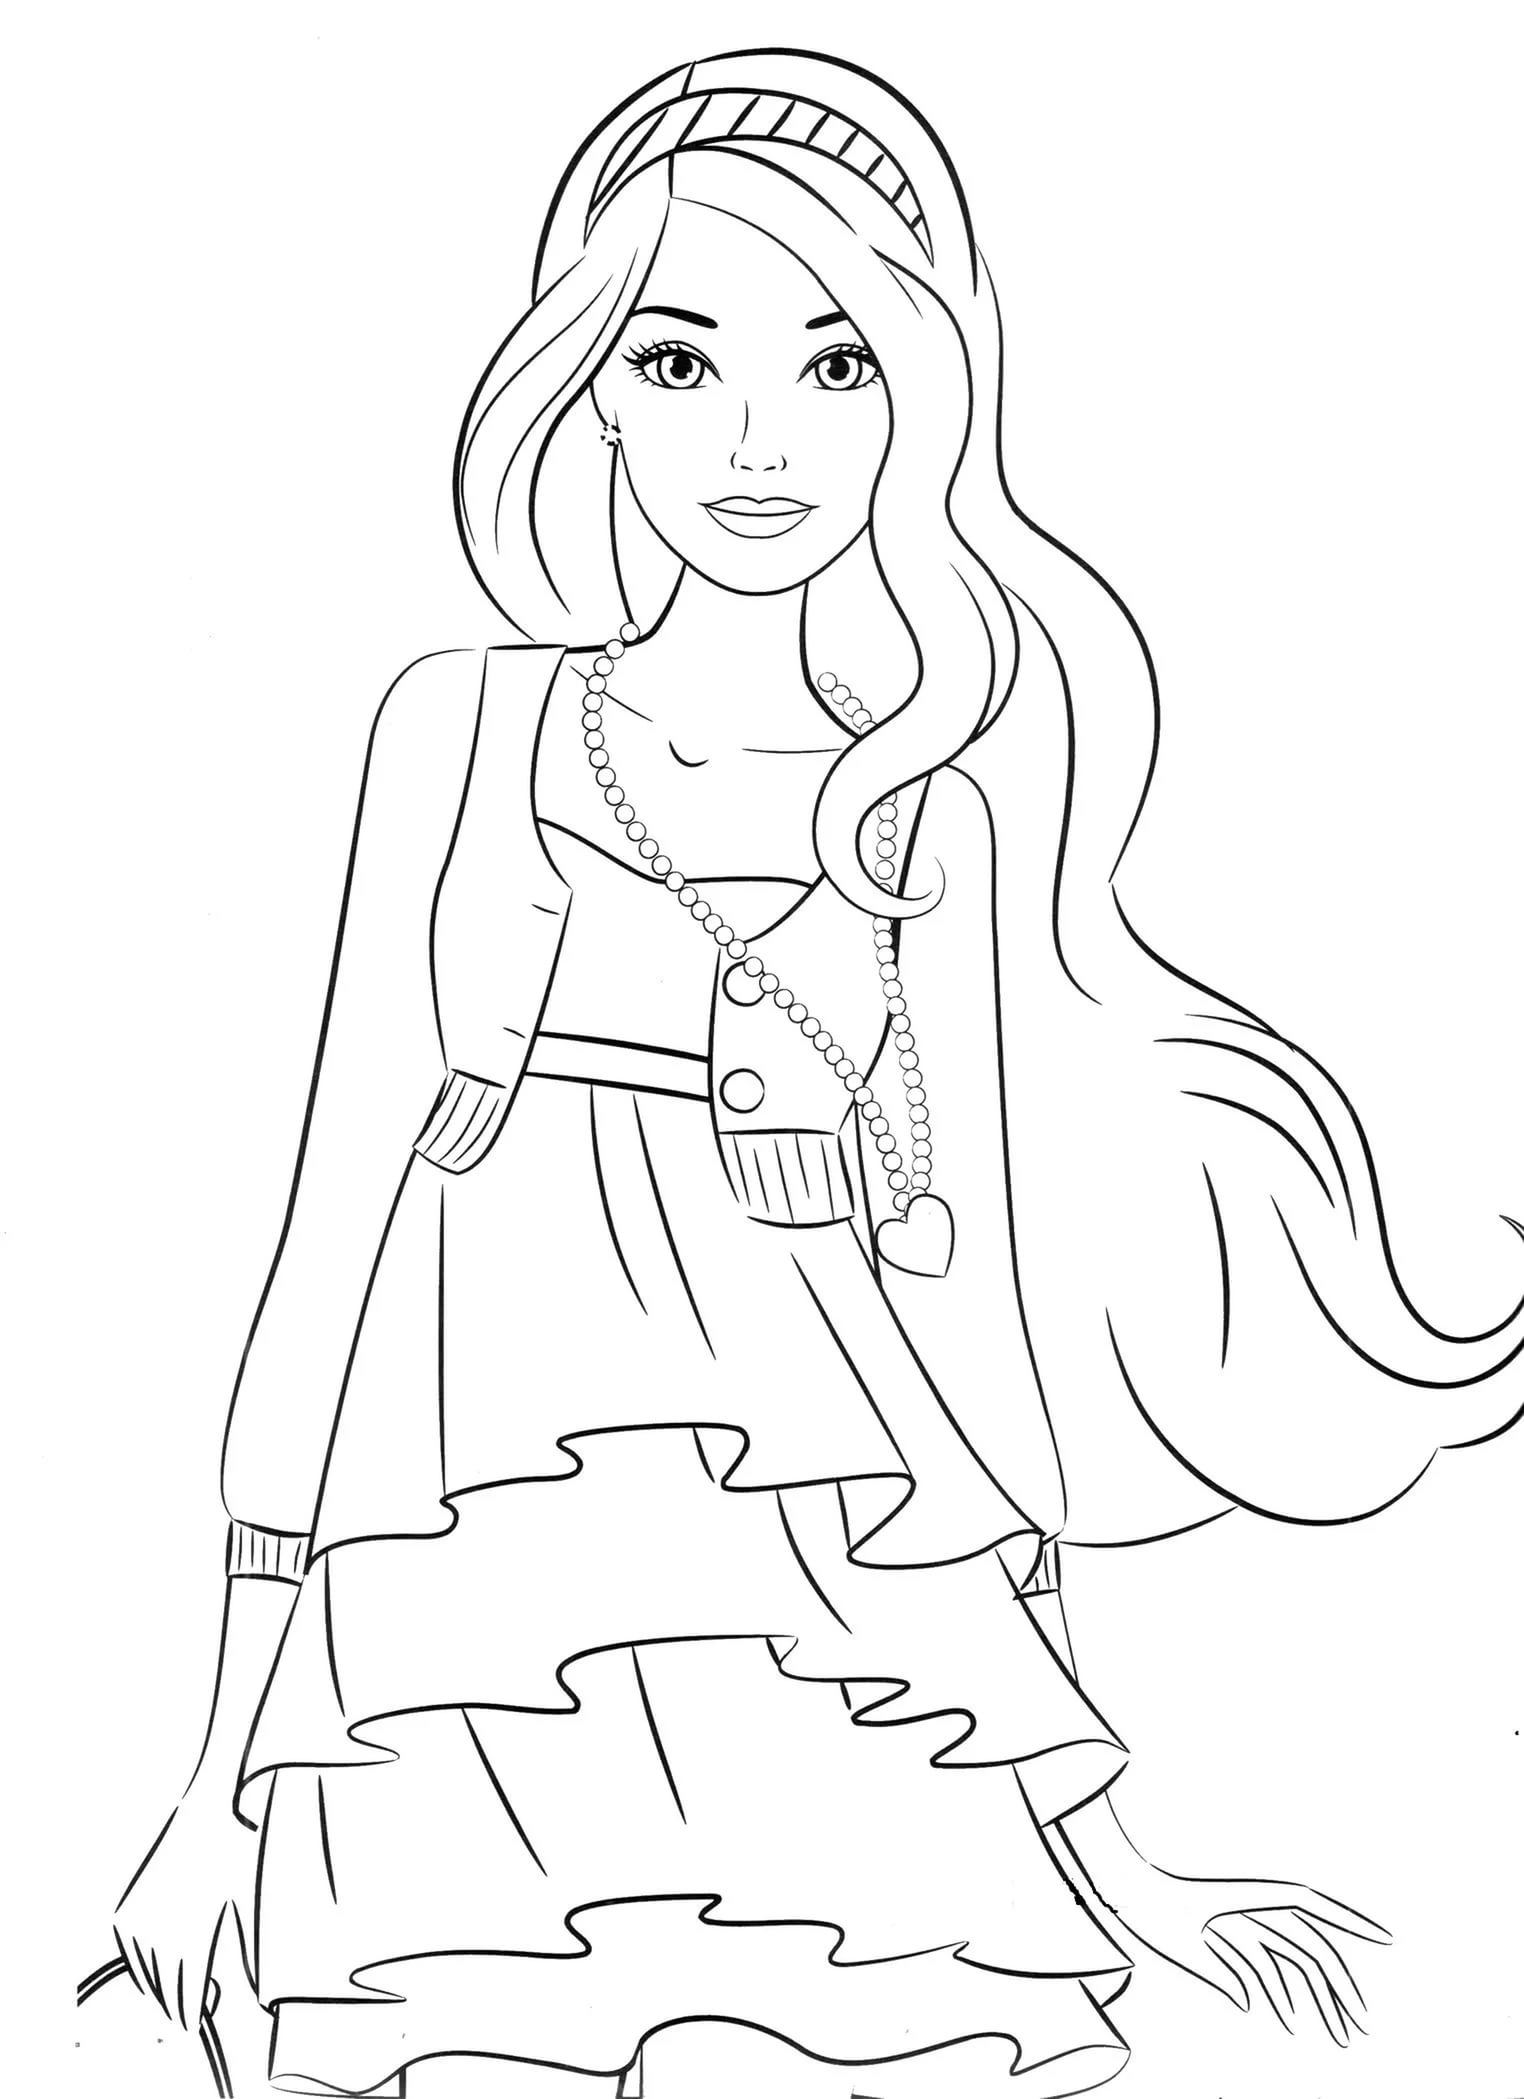 coloring pages for older girls coloring pages amusing coloring pages for older girls coloring older pages girls for